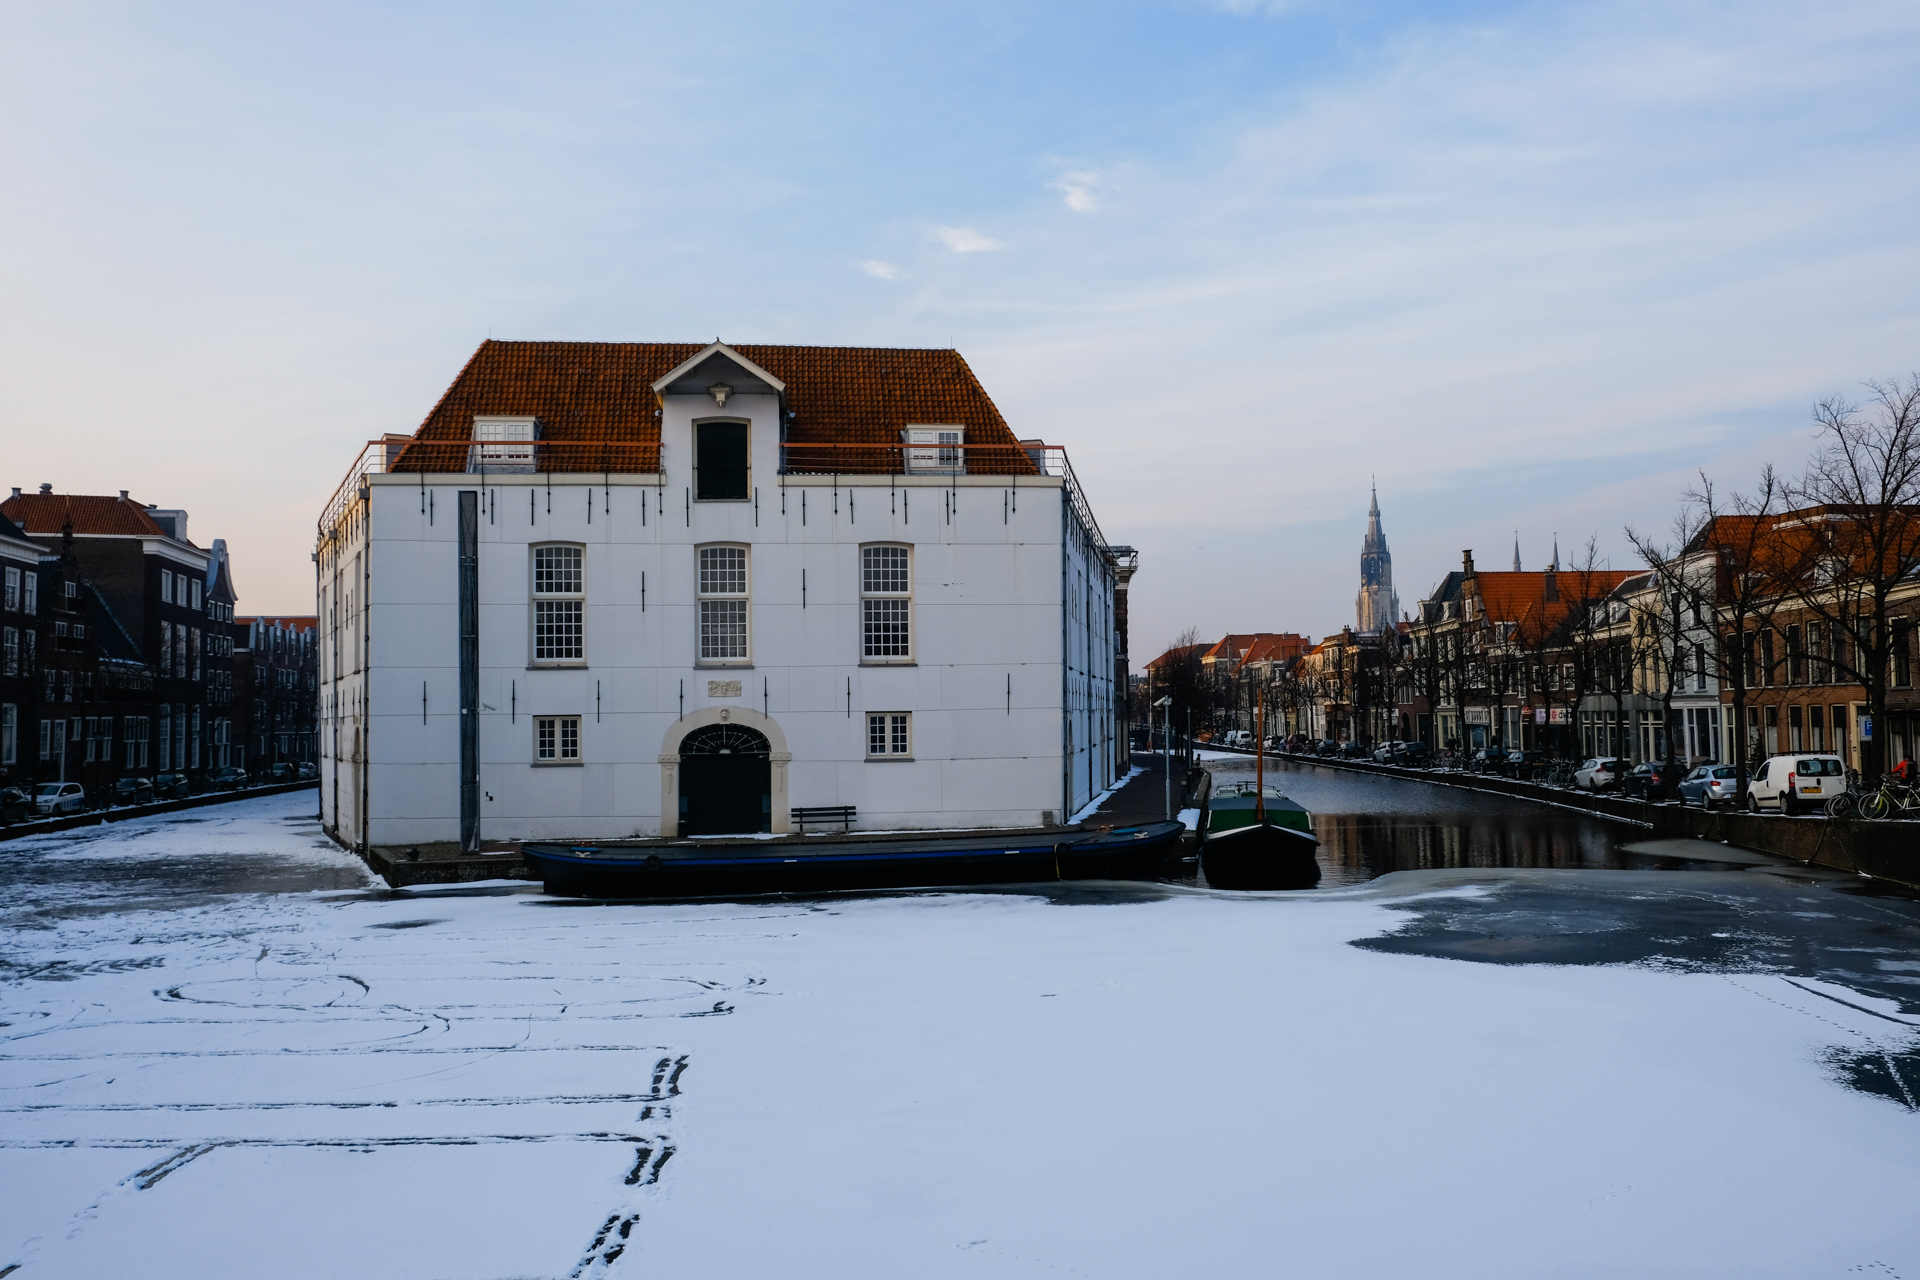 Frozen canal near the army museum